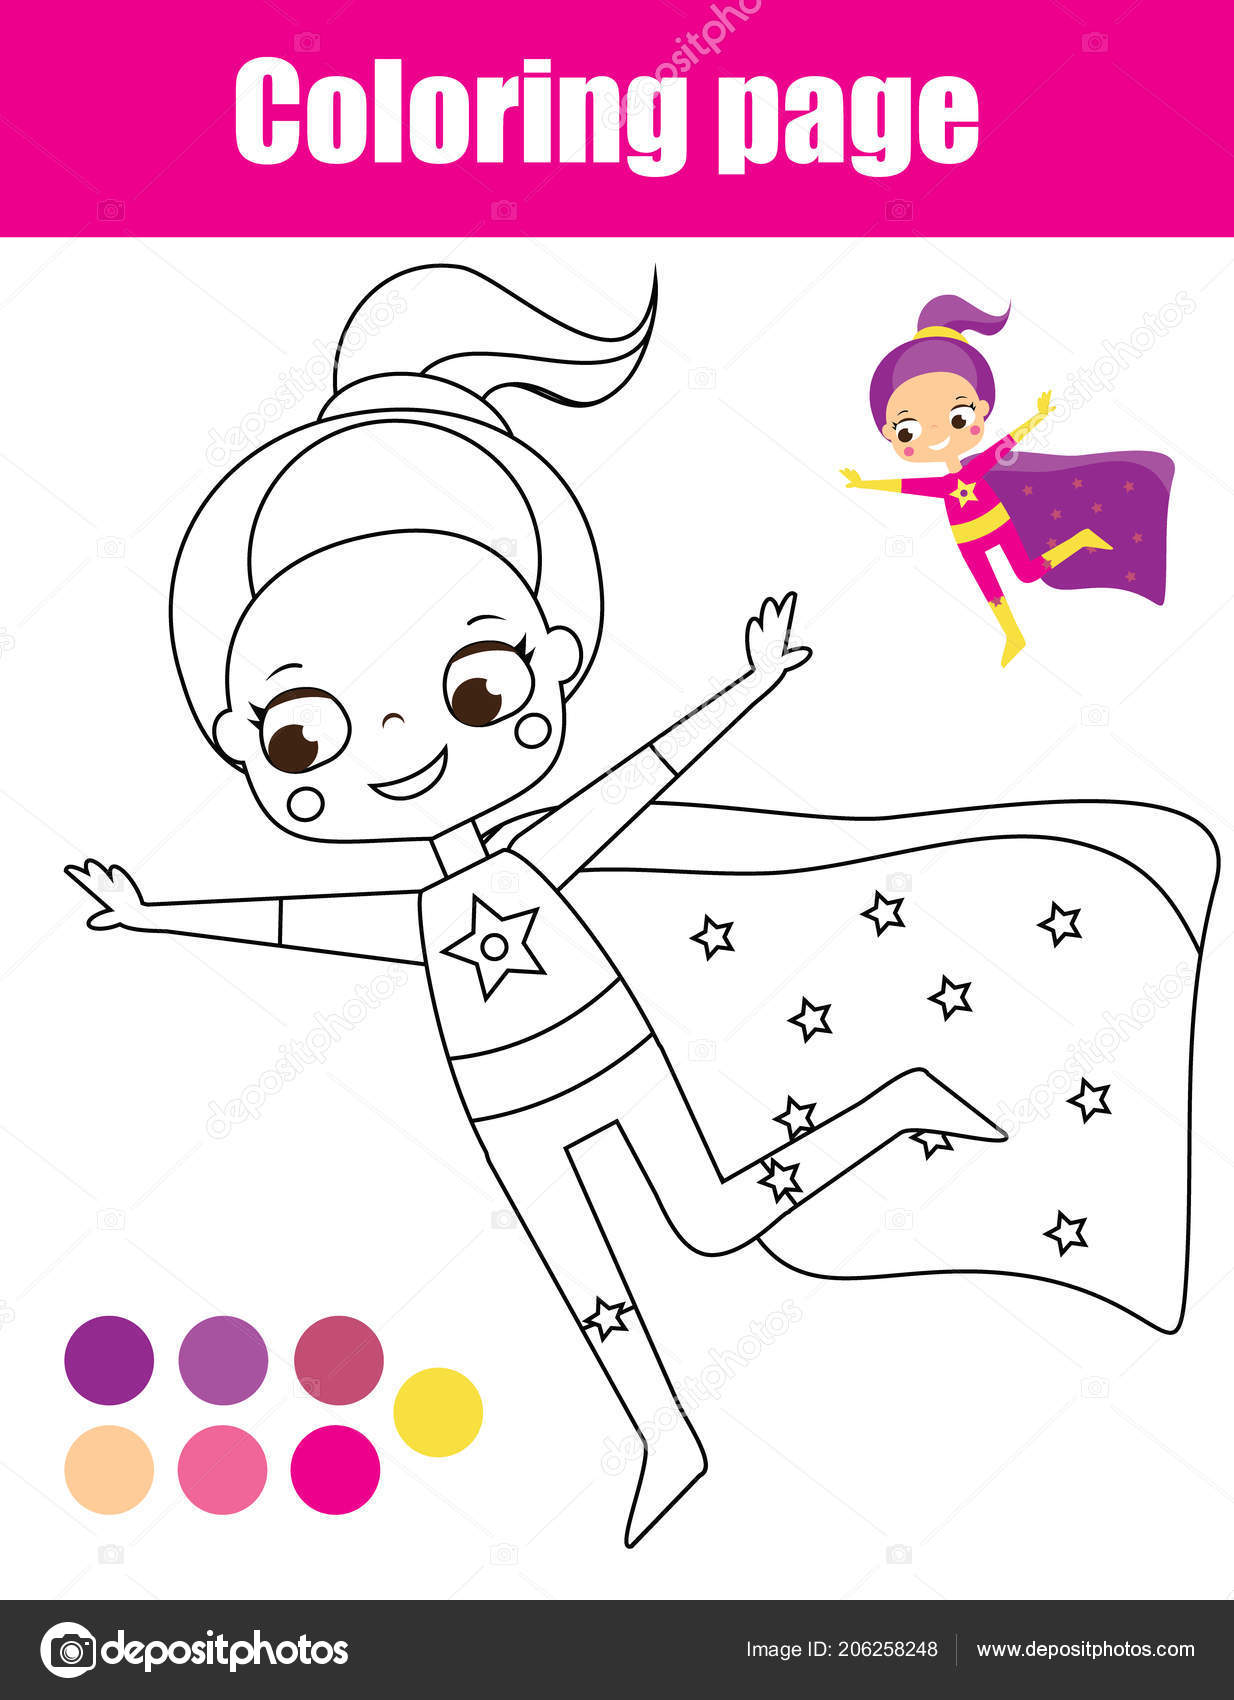 photograph regarding Printable Activities for Toddlers named Superhero woman drawing Coloring Web page Superhero Lady